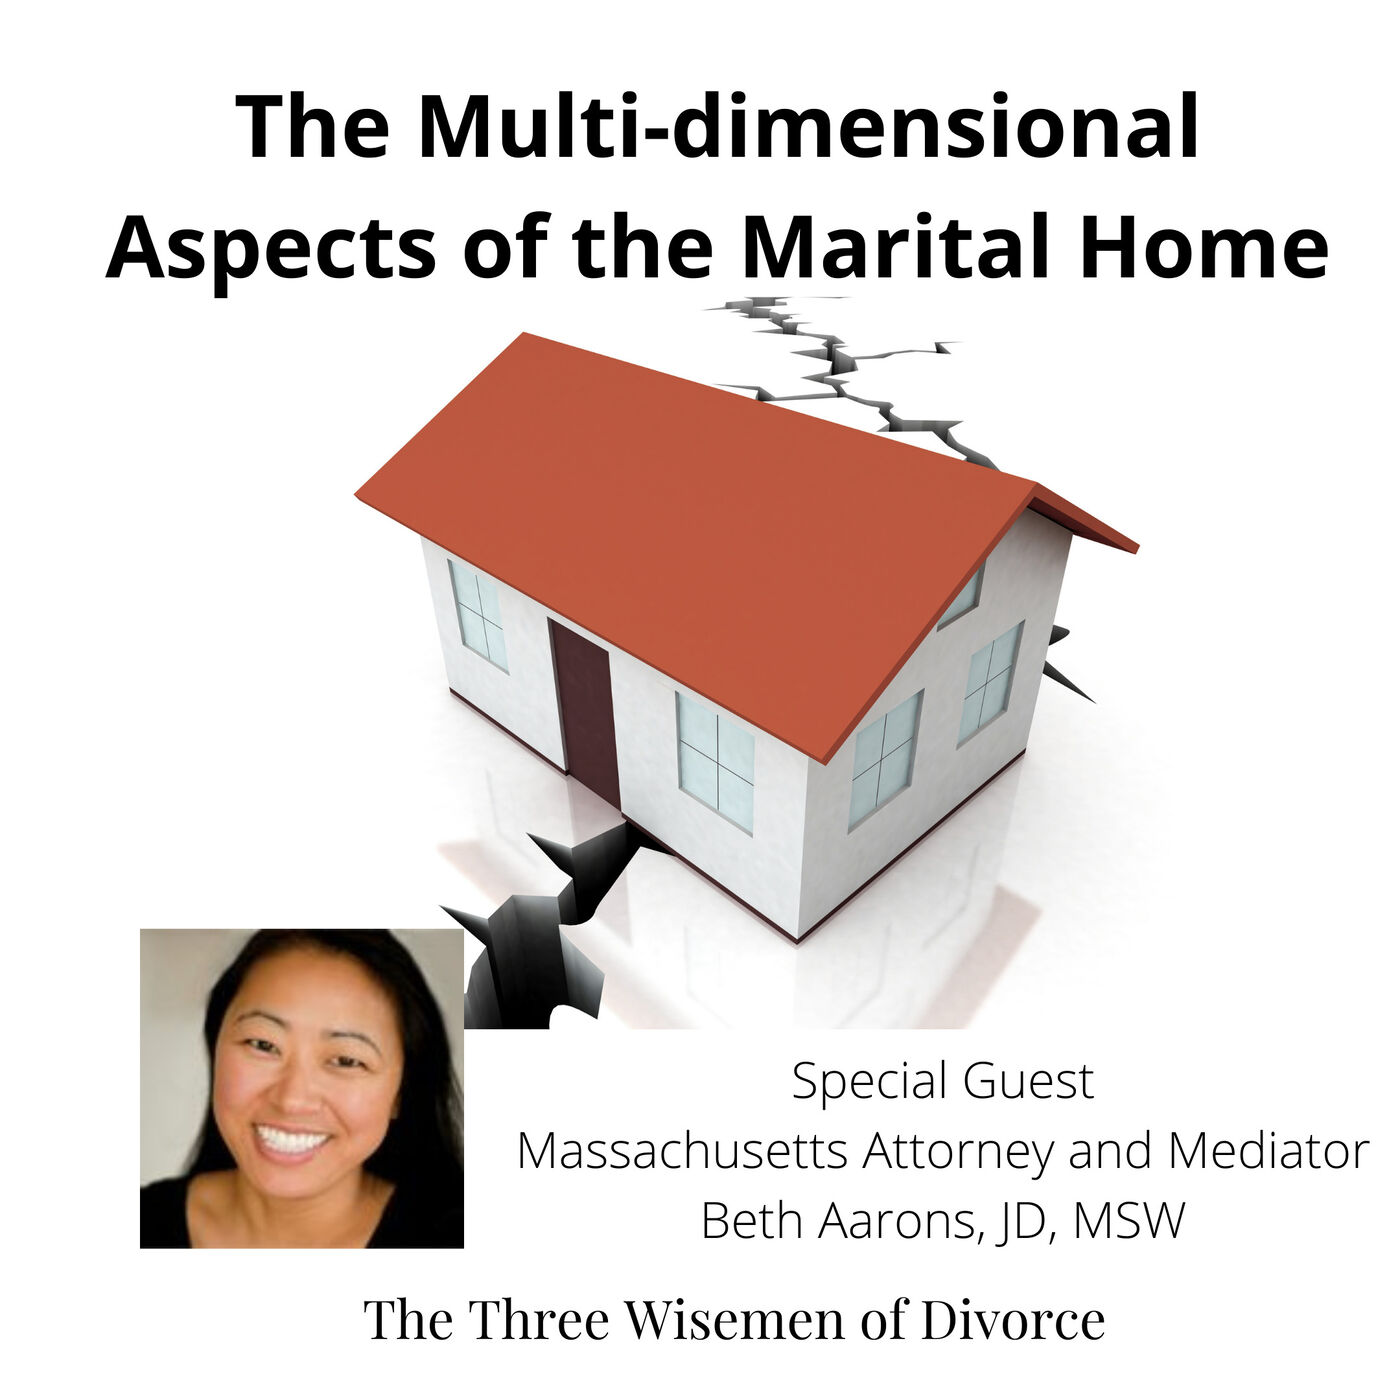 The Multi-dimensional Aspects of the Marital Home